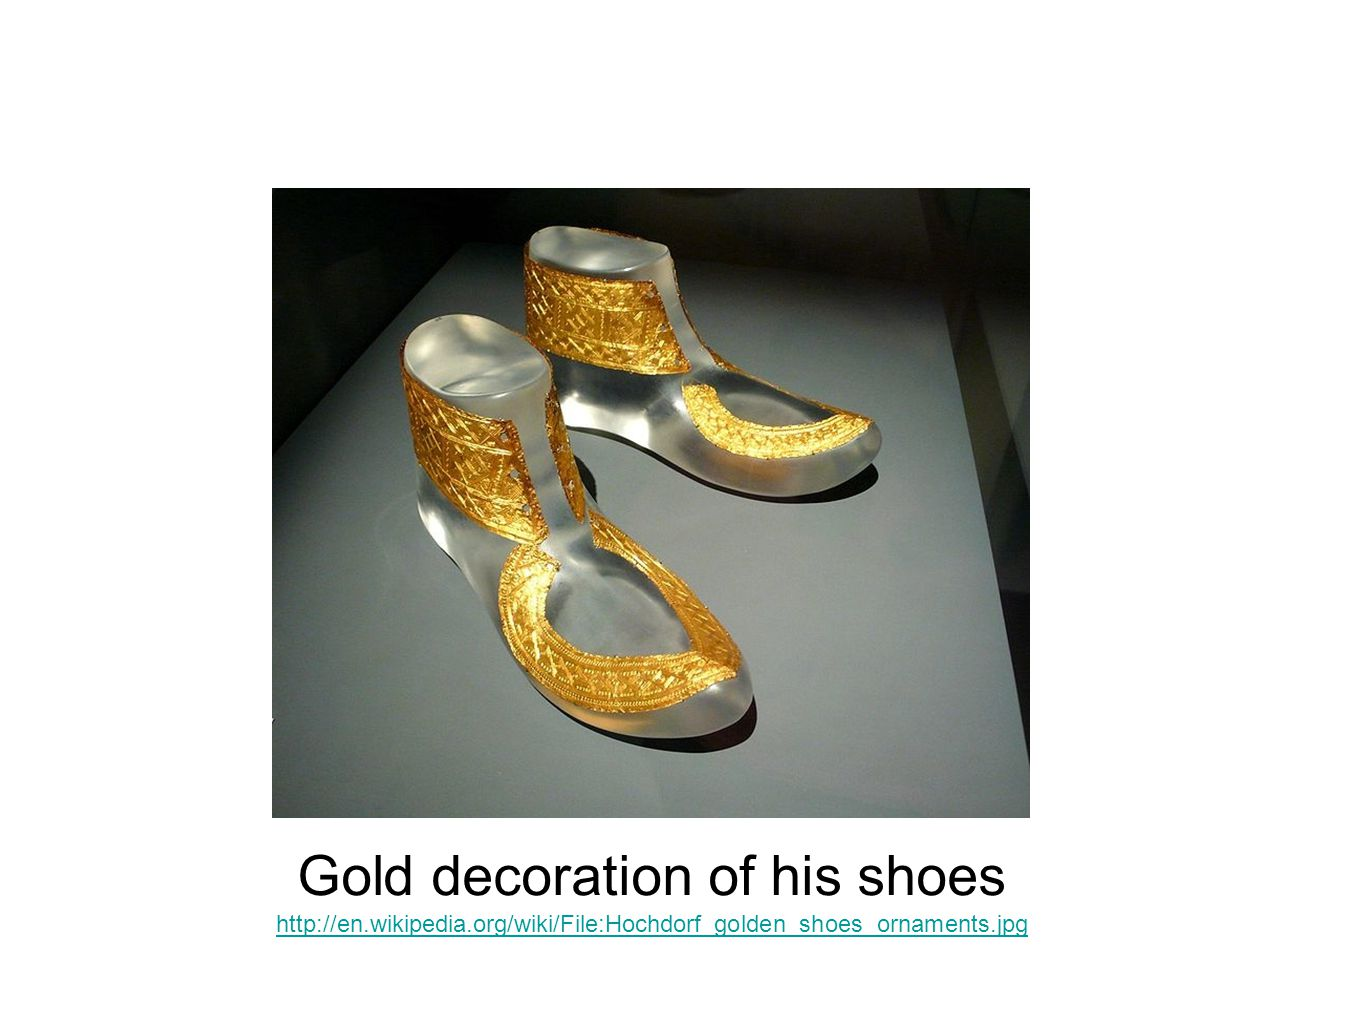 Gold decoration of his shoes http://en.wikipedia.org/wiki/File:Hochdorf_golden_shoes_ornaments.jpg